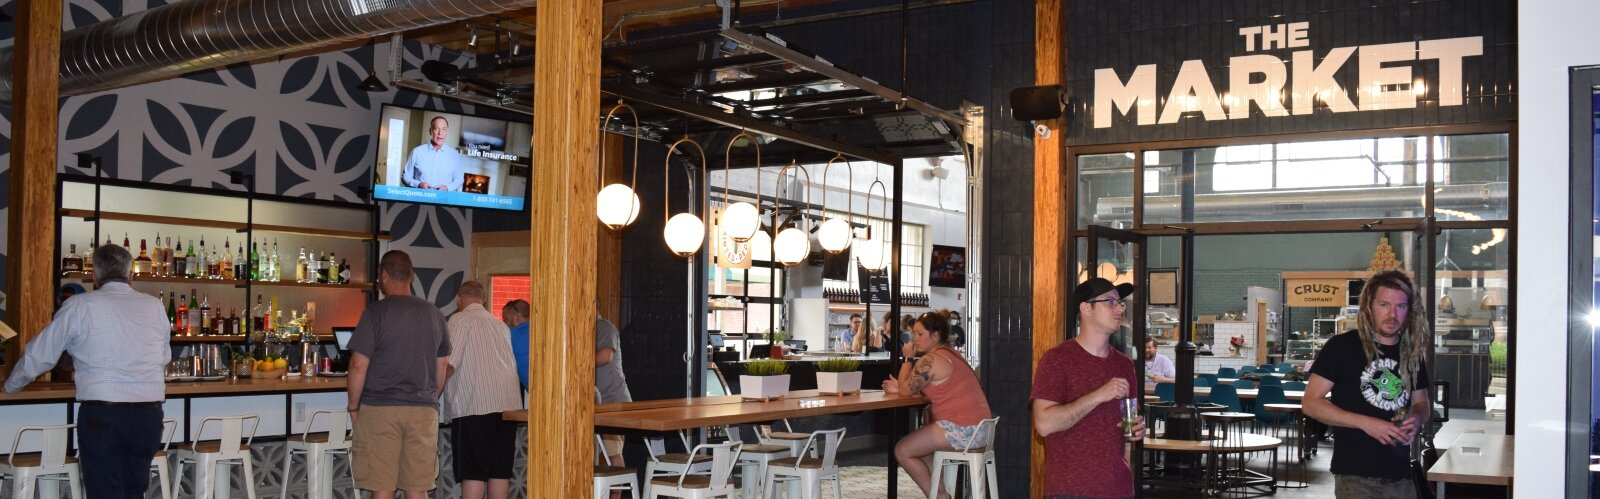 The Market Bar is one of the many new local spots open within COhatch The Market.